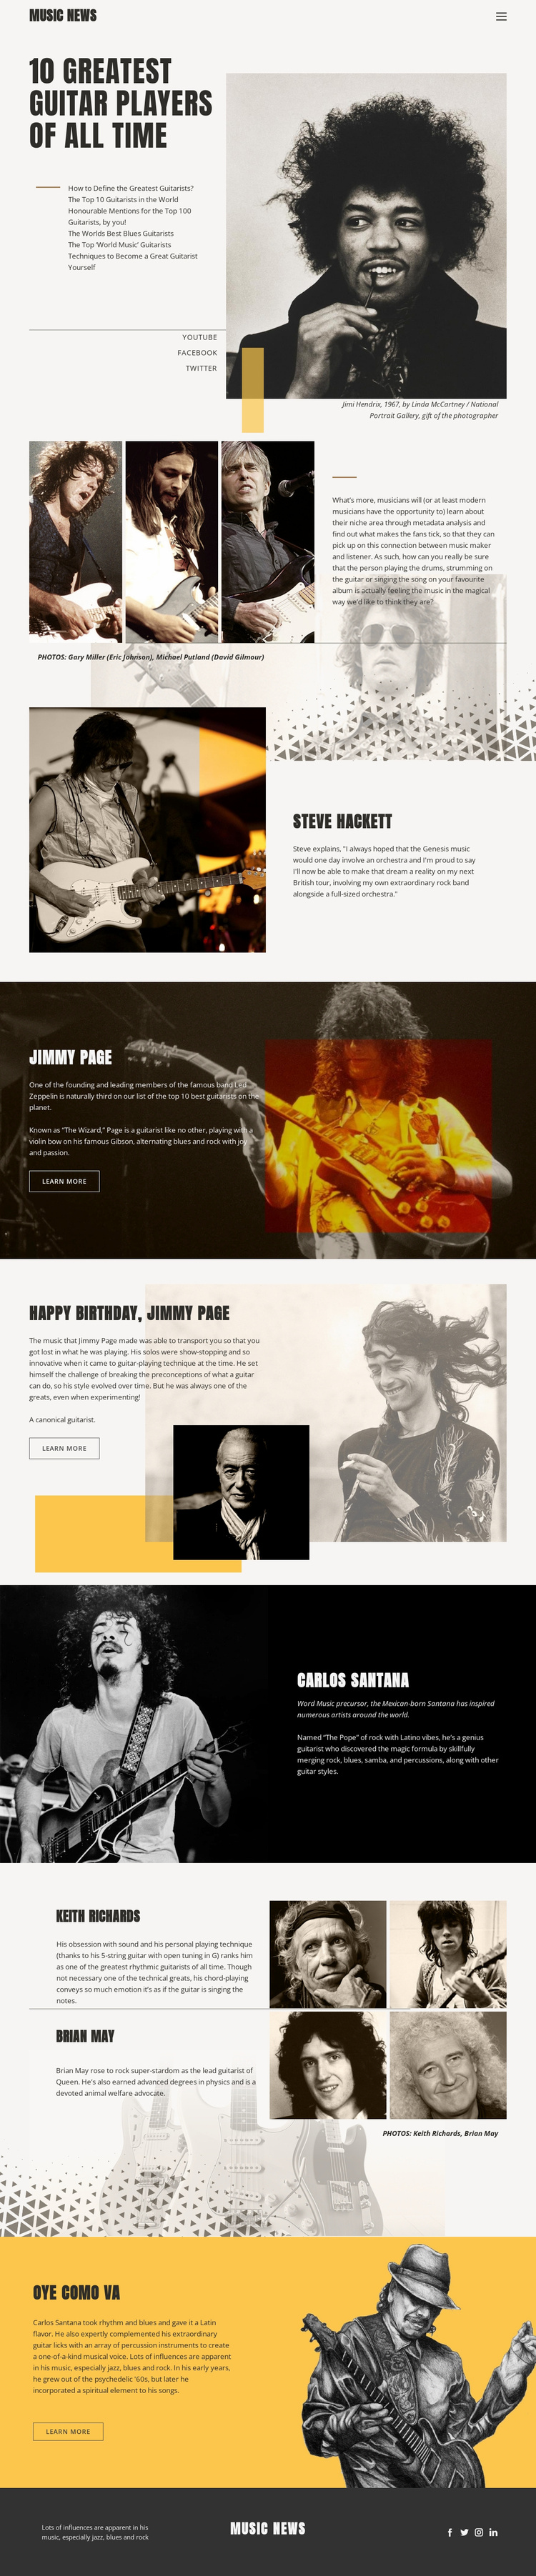 The Top Guitar Players Website Template